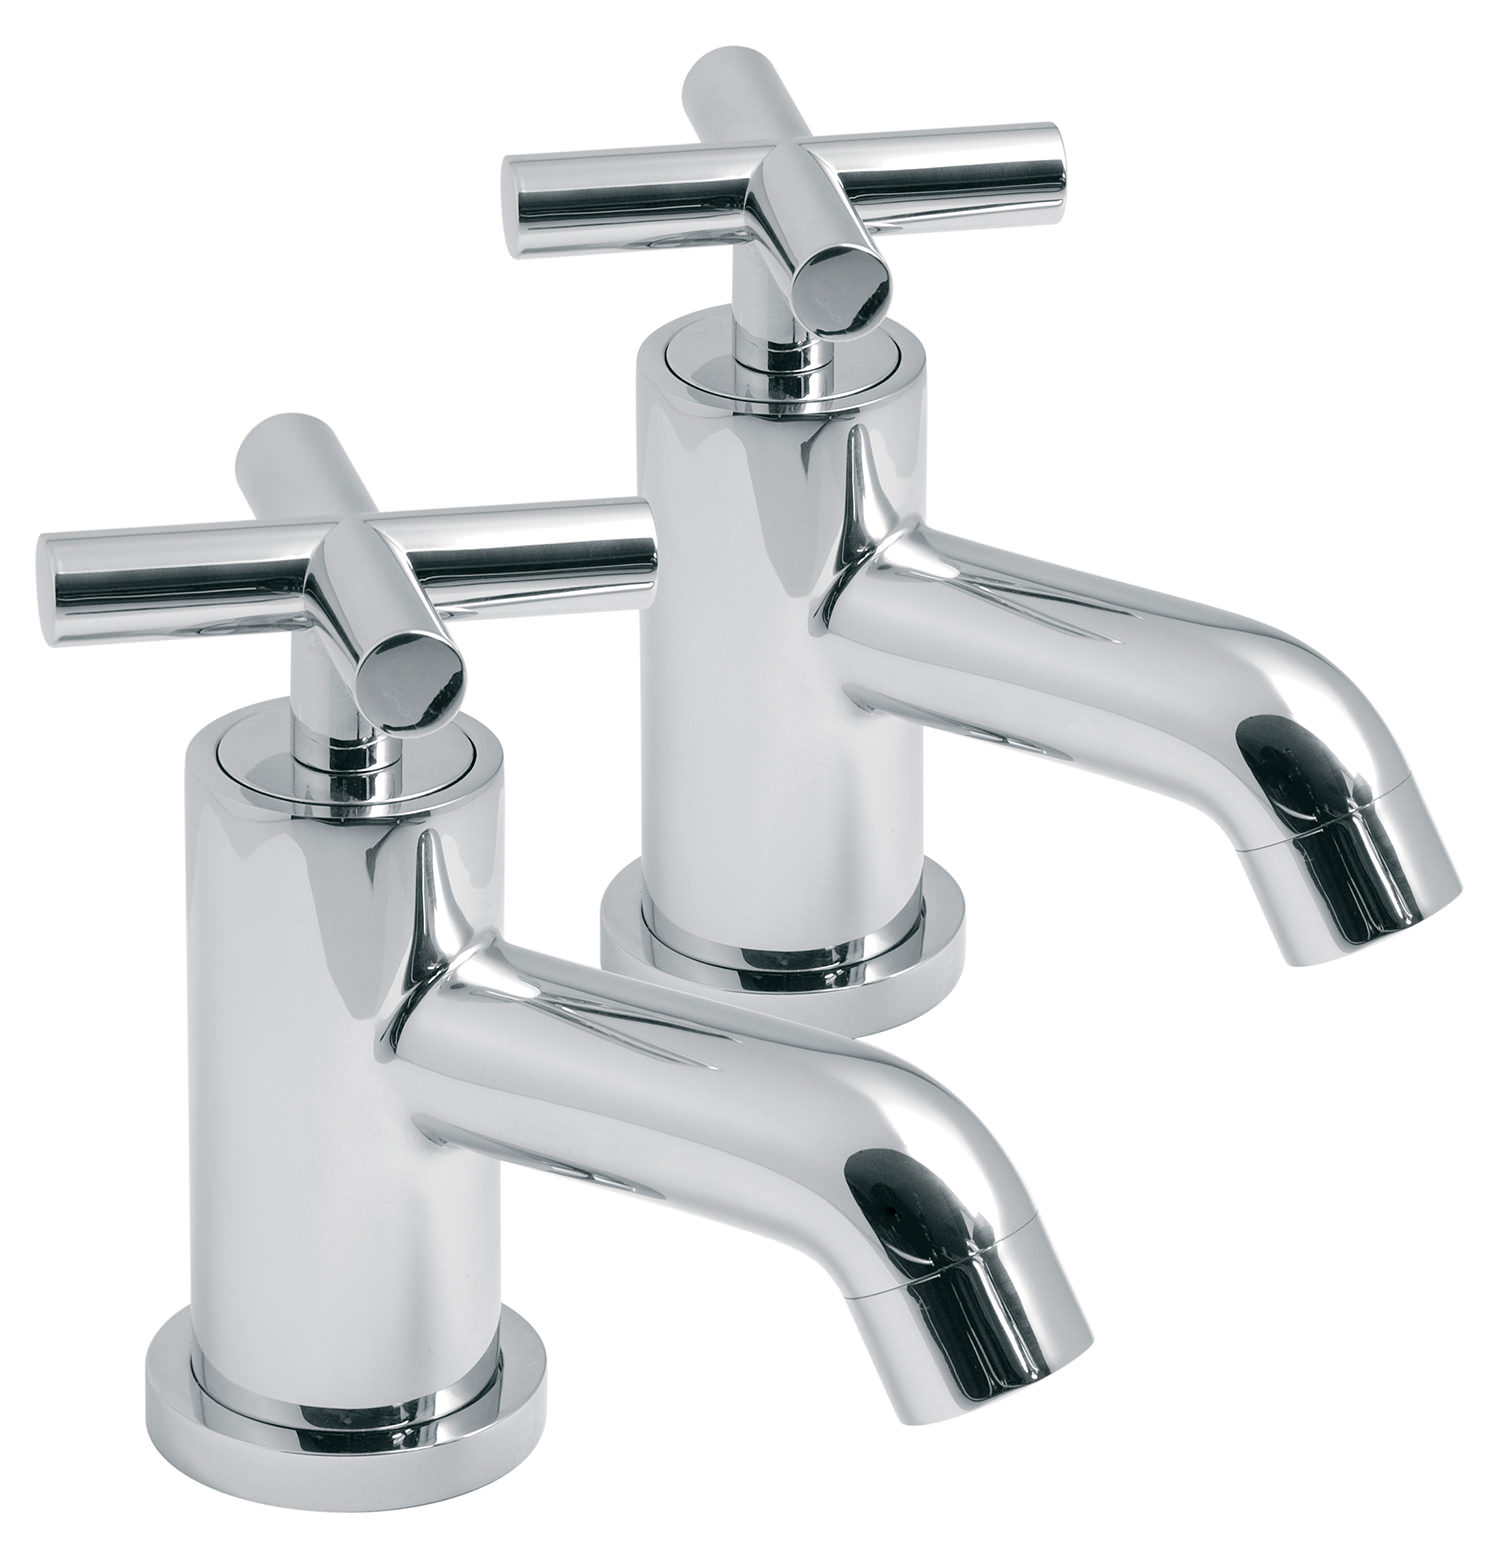 qs supplies taps bath fillers vado elements water bath pillar taps